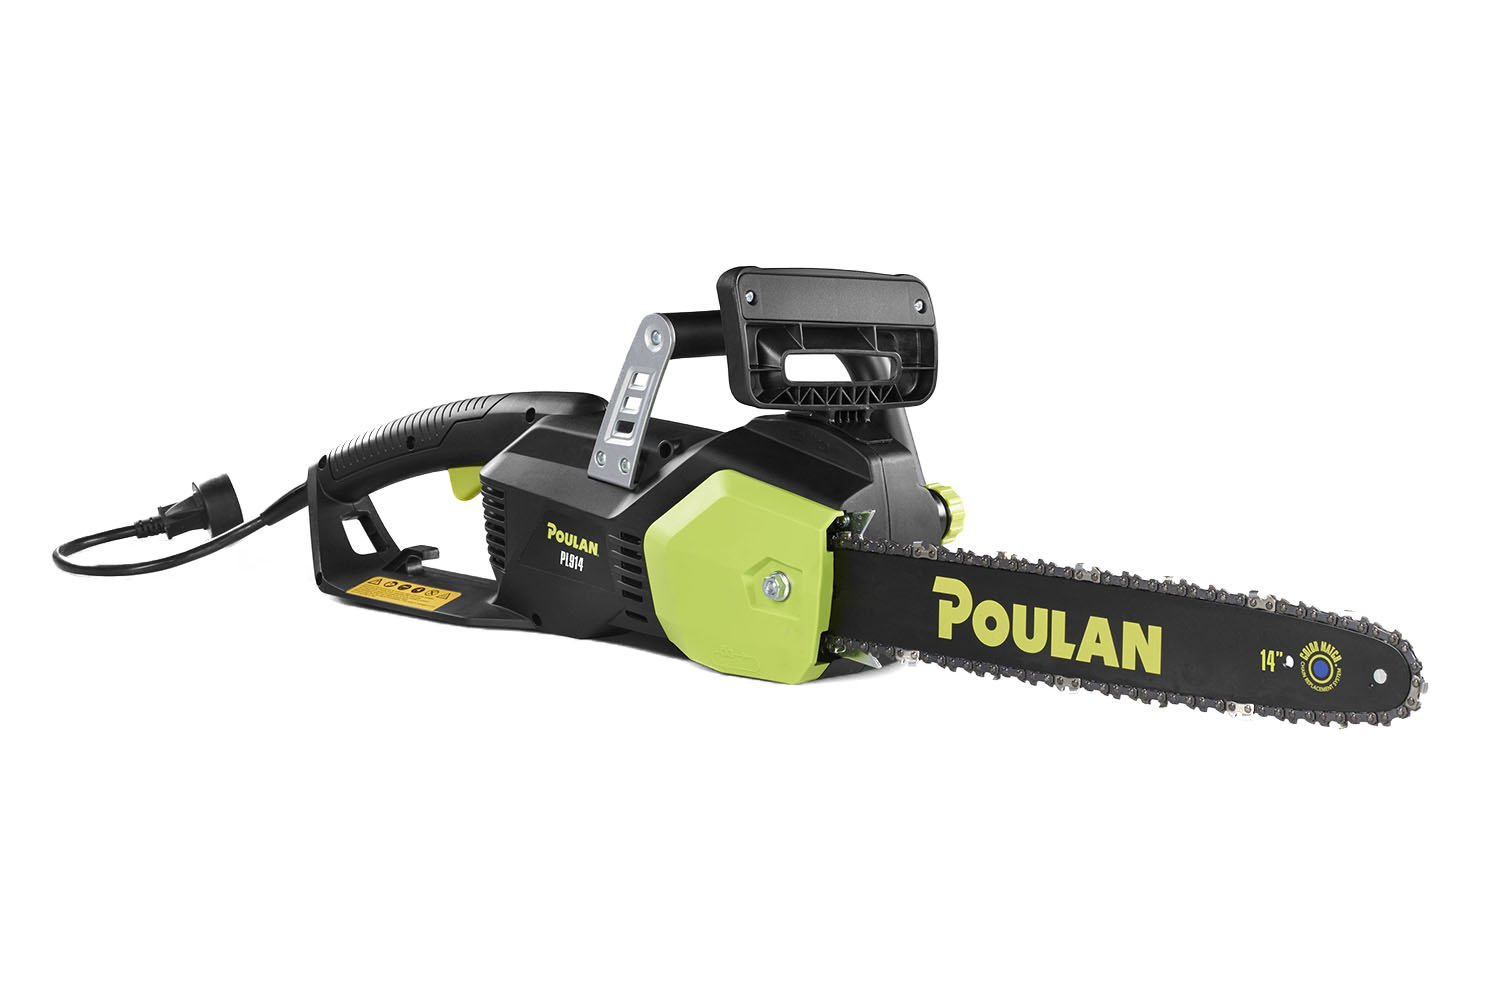 Poulan 14 in. 9-Amp Electric Corded Chainsaw, PL914